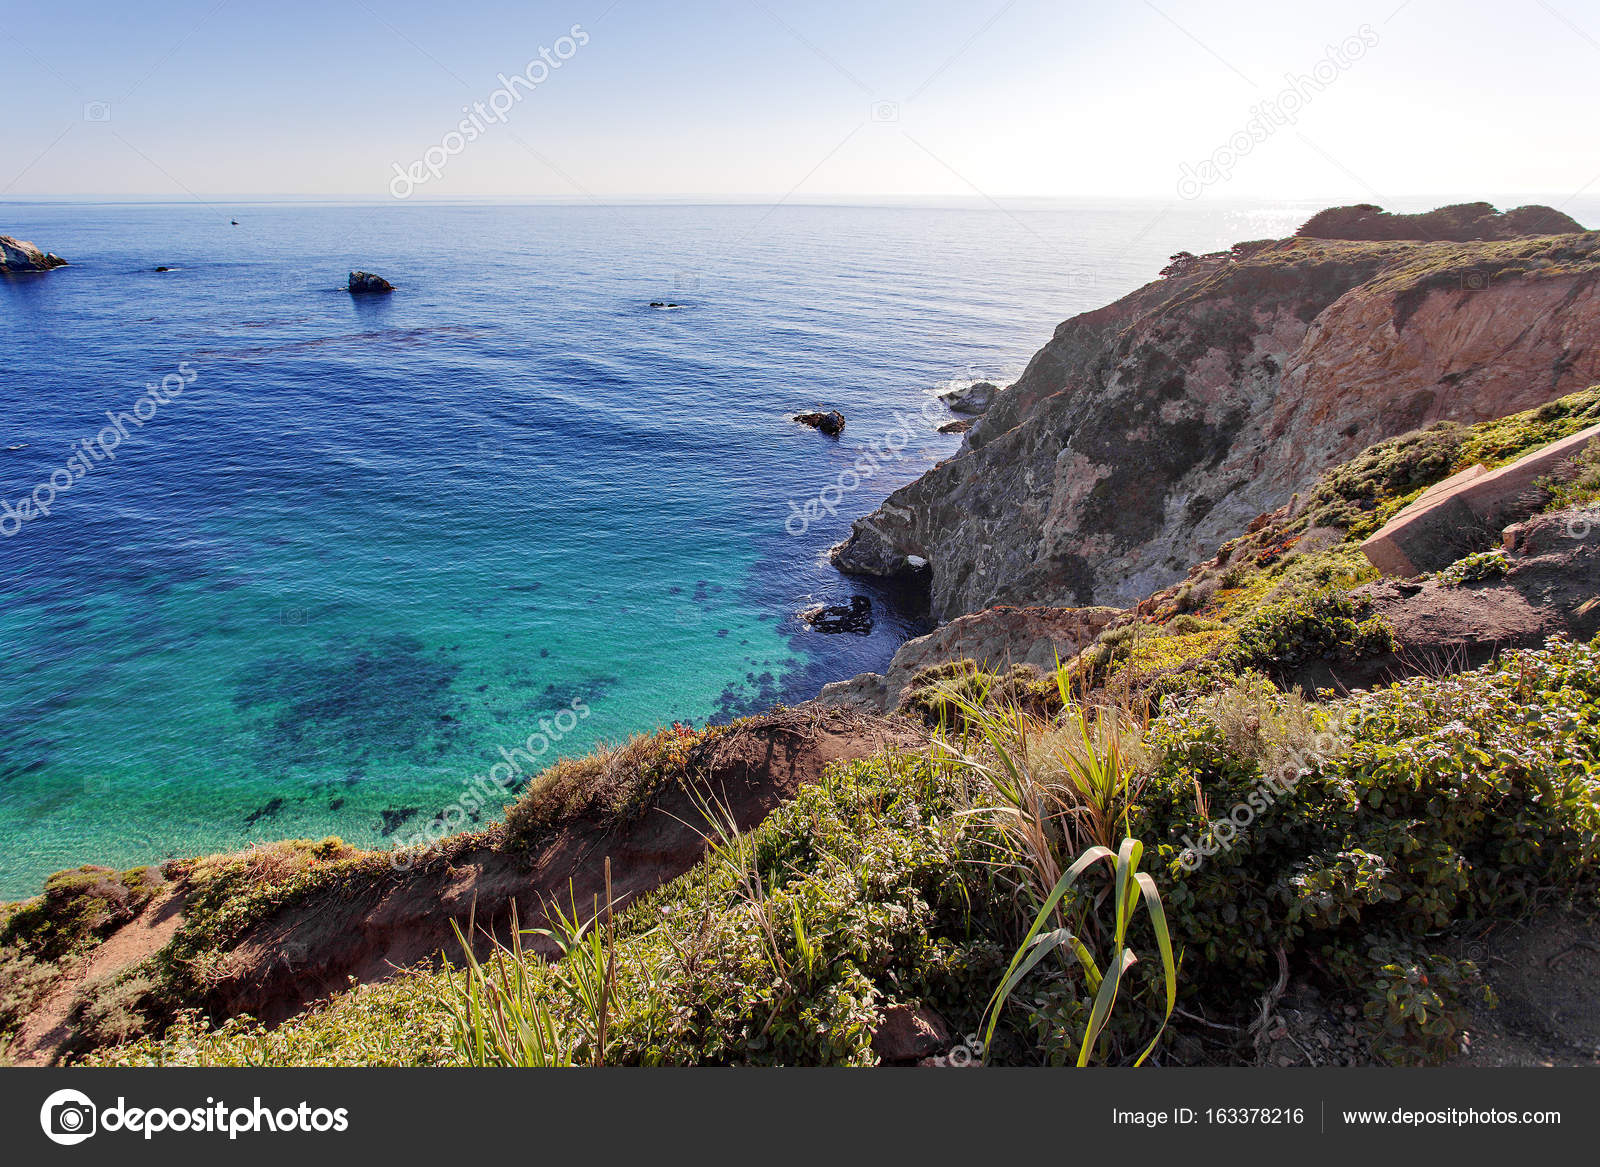 Pacific ocean california state route 1 pacific coast highway pacific ocean california state route 1 pacific coast highway nearby bixby creek bridge big sur area california united states photo by irinasen publicscrutiny Image collections